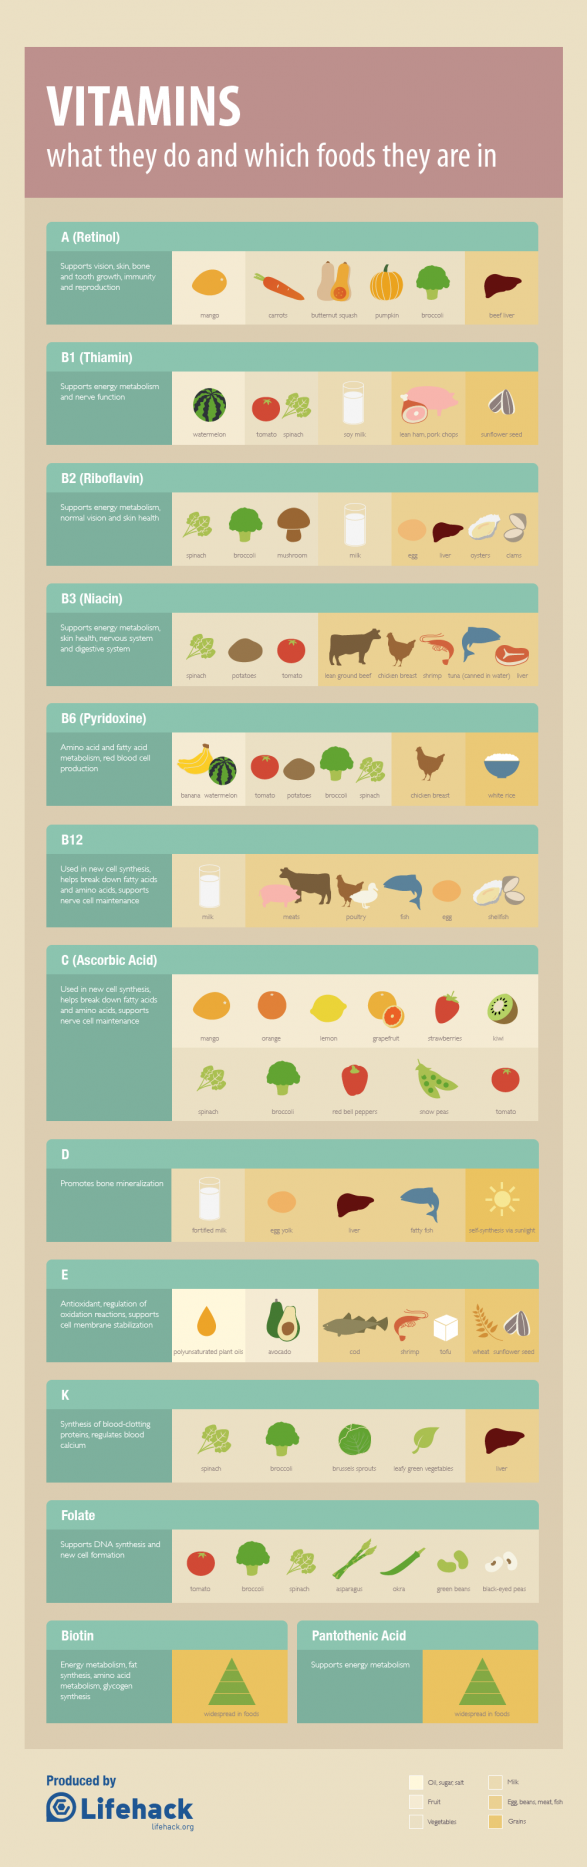 Vitamins Cheat Sheet